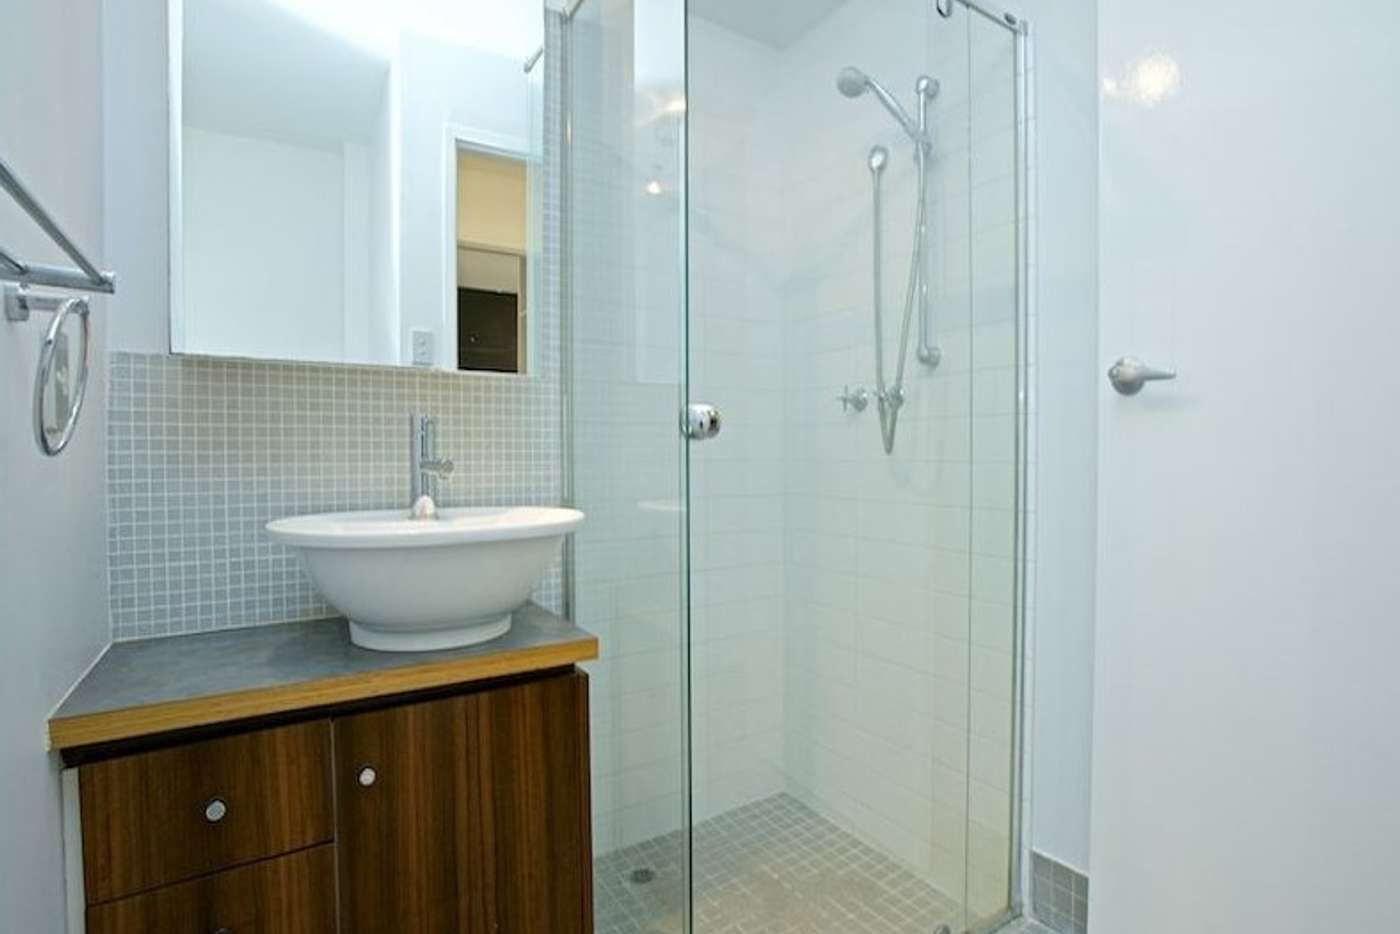 Sixth view of Homely house listing, 1/68 First Avenue, Mount Lawley WA 6050